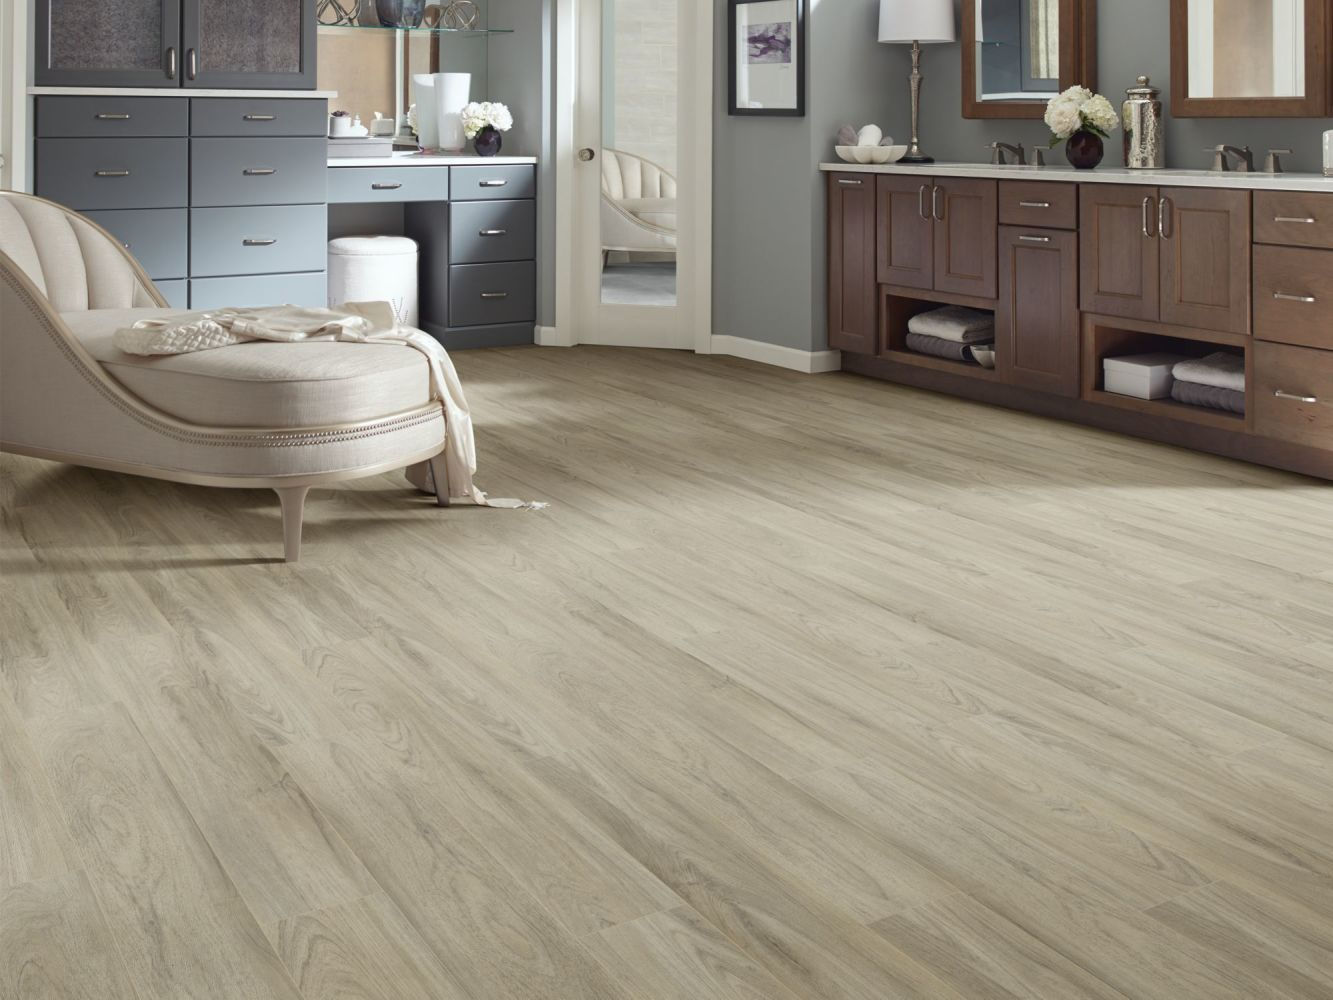 Shaw Floors Resilient Residential Pantheon HD Plus Pisa 01027_2001V